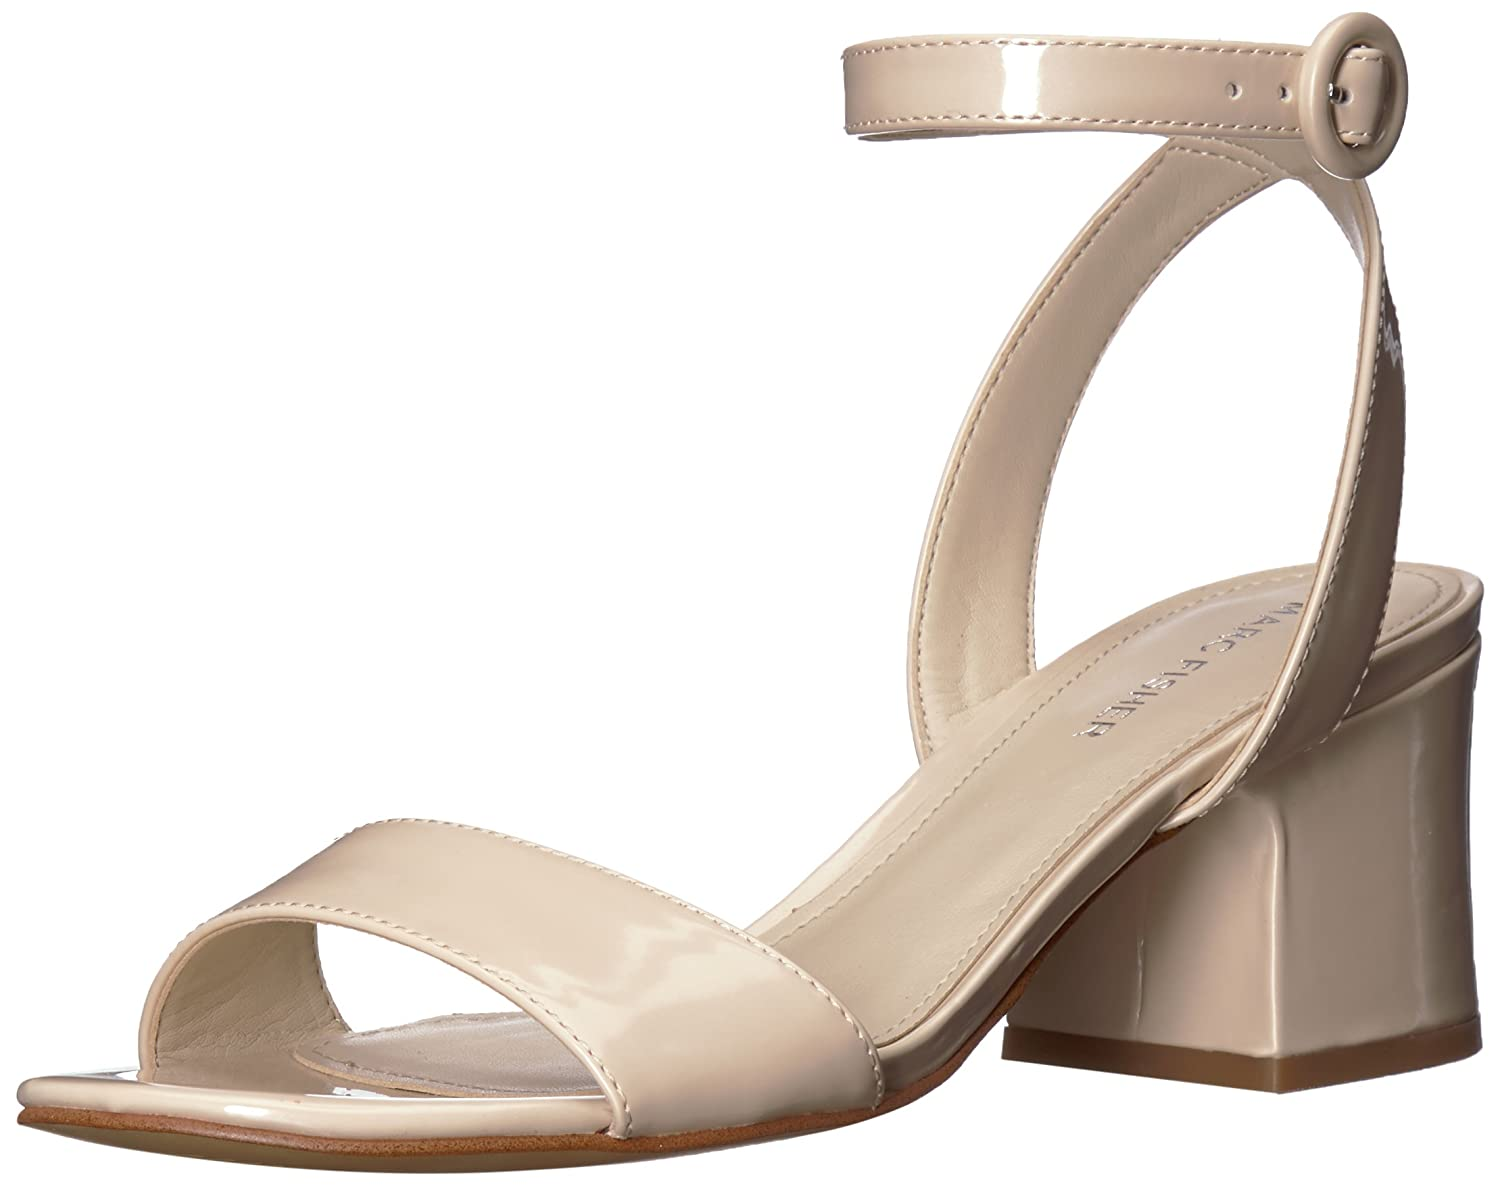 素晴らしい [Marc Fisher] Women's Palila Sandal [並行輸入品] B(M) B078S5532T Fisher] 9 B(M) B078S5532T US|ベージュ ベージュ 9 B(M) US, KOM-NETネットショップ:217d47a2 --- obara-daijiro.com